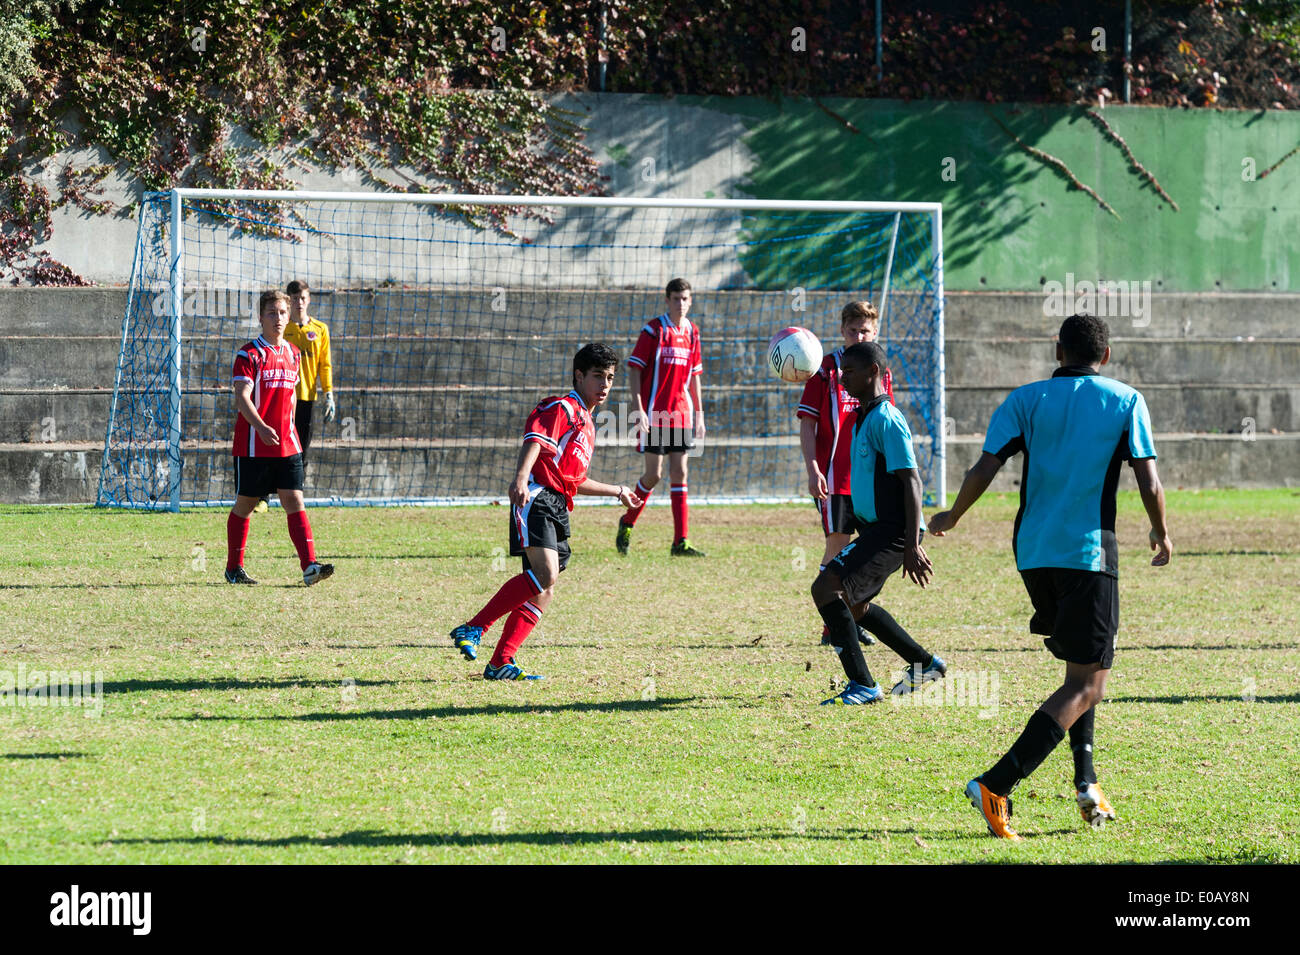 Youth football team paying a match, referee watching, Cape Town, South Africa - Stock Image